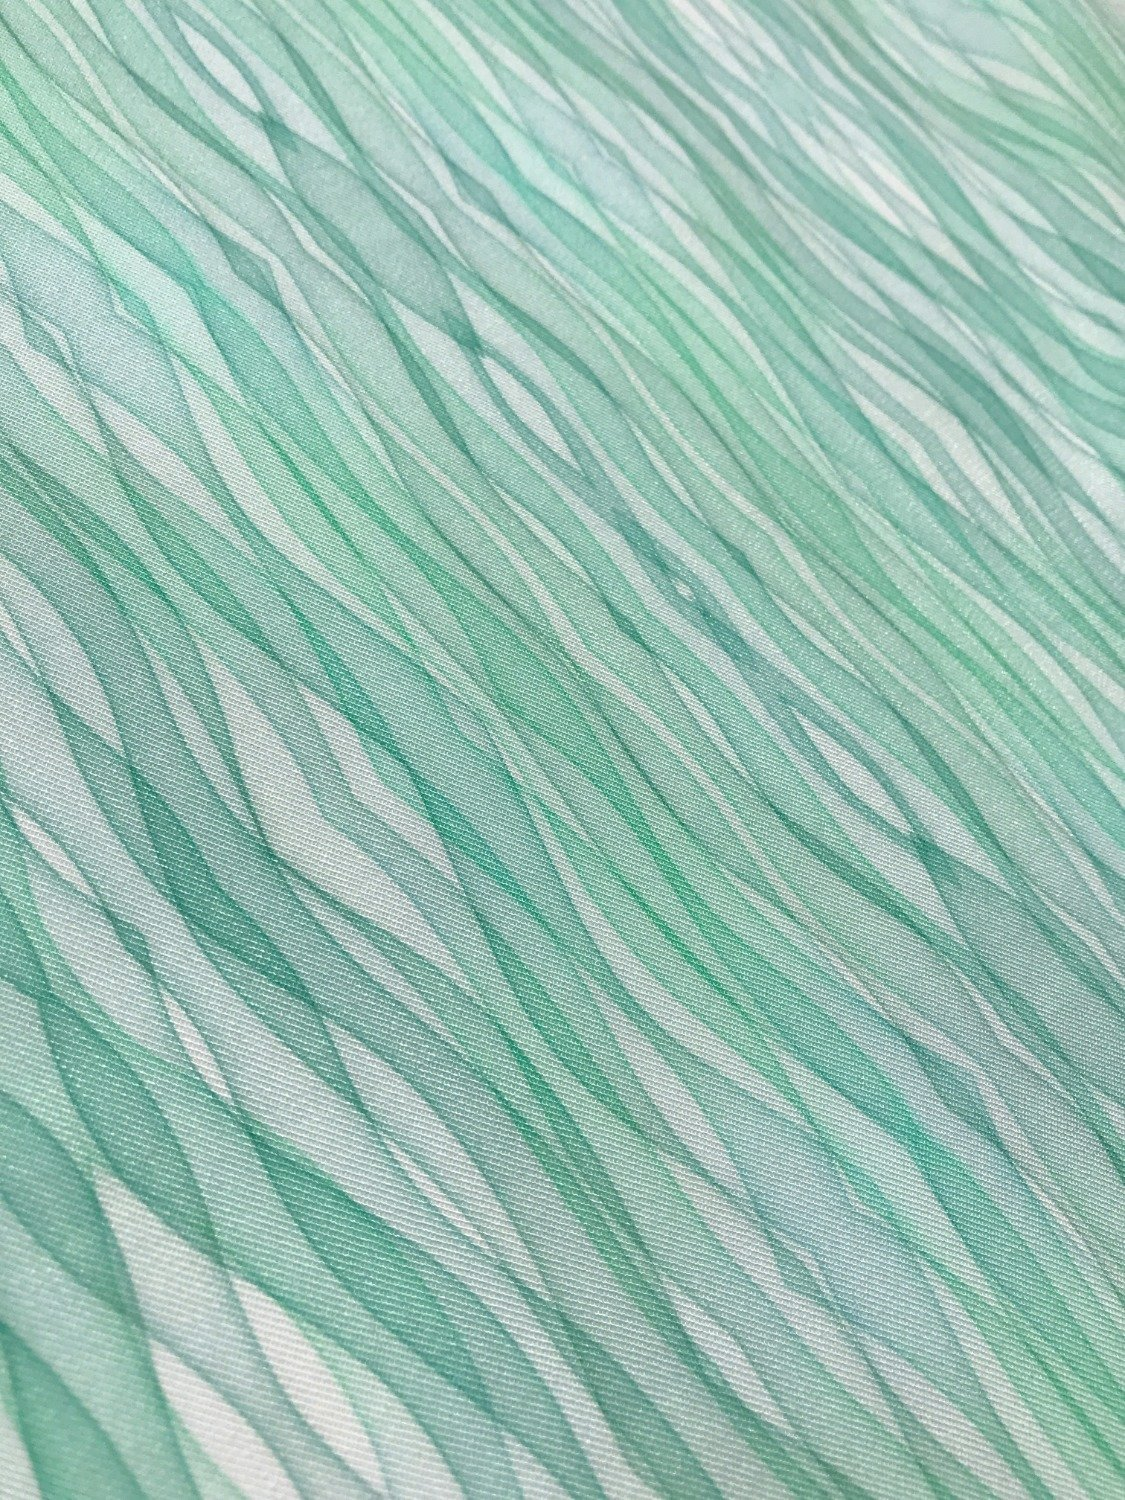 Ocean watergreen - twill de viscose